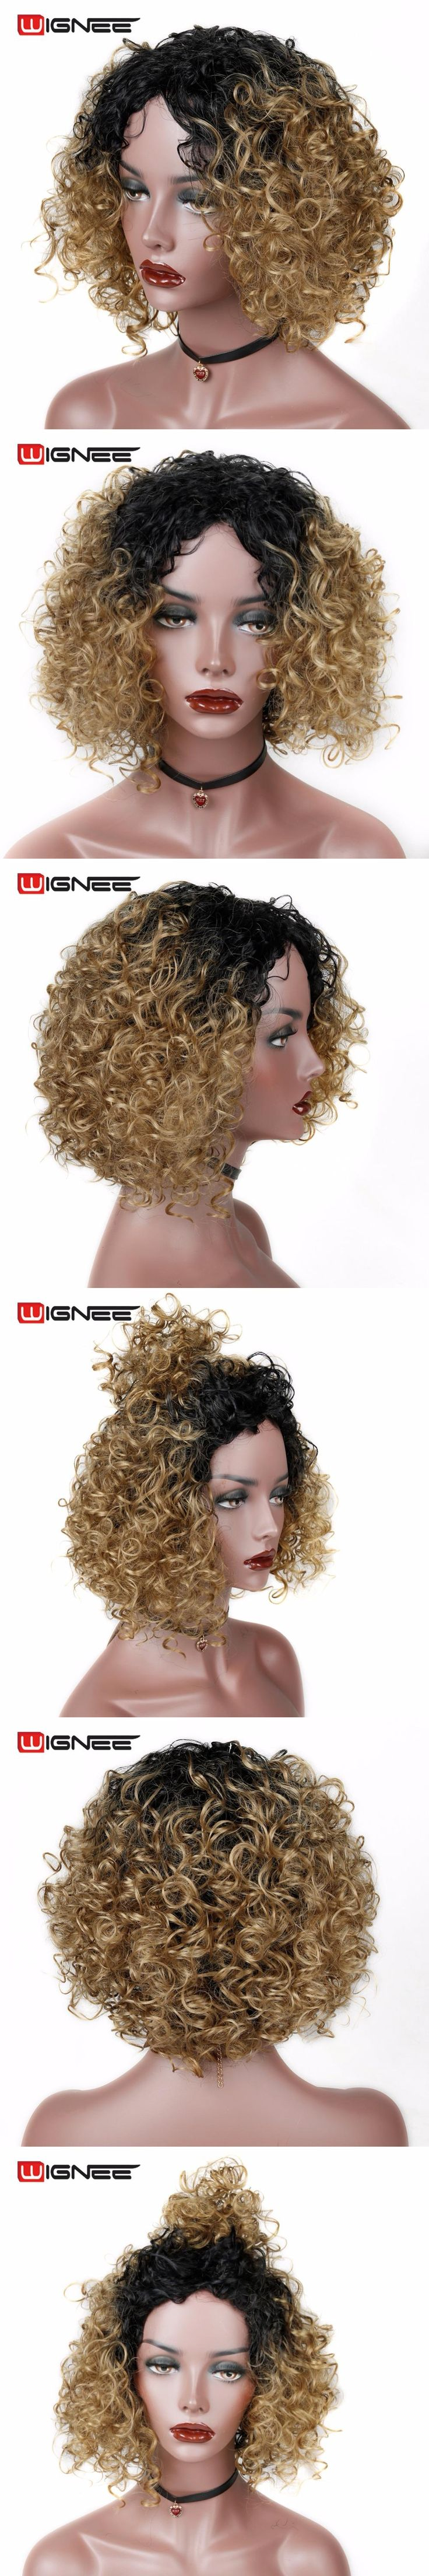 Wignee Short Afro Kinky Curly Halloween Wigs High Density Heat Resistant Synthetic Wigs Ombre Blonde Cosplay Hair Women Wigs